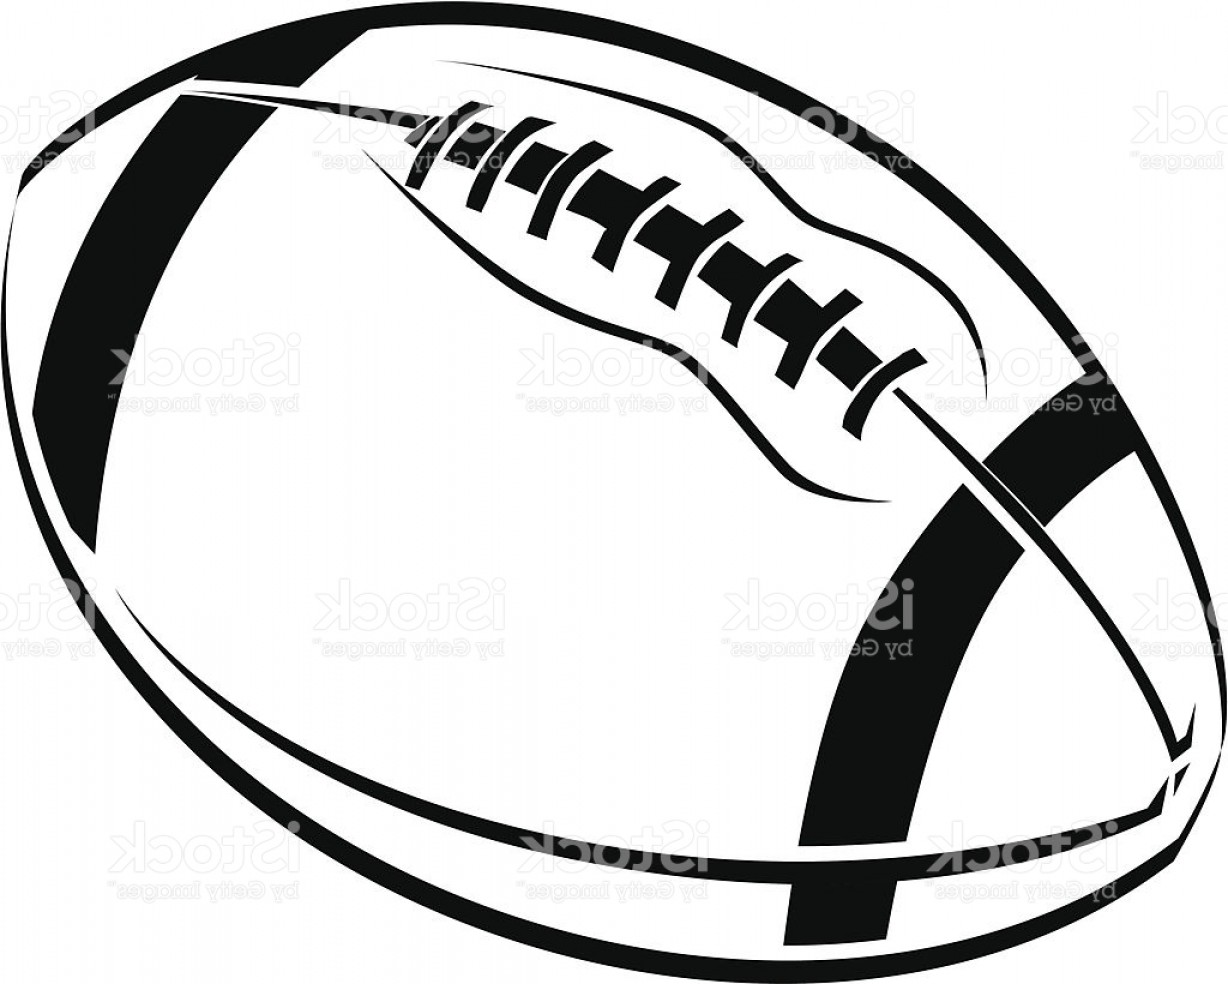 Black And White Vector American Football: Black And White Line Art Drawing Of An American Football Gm